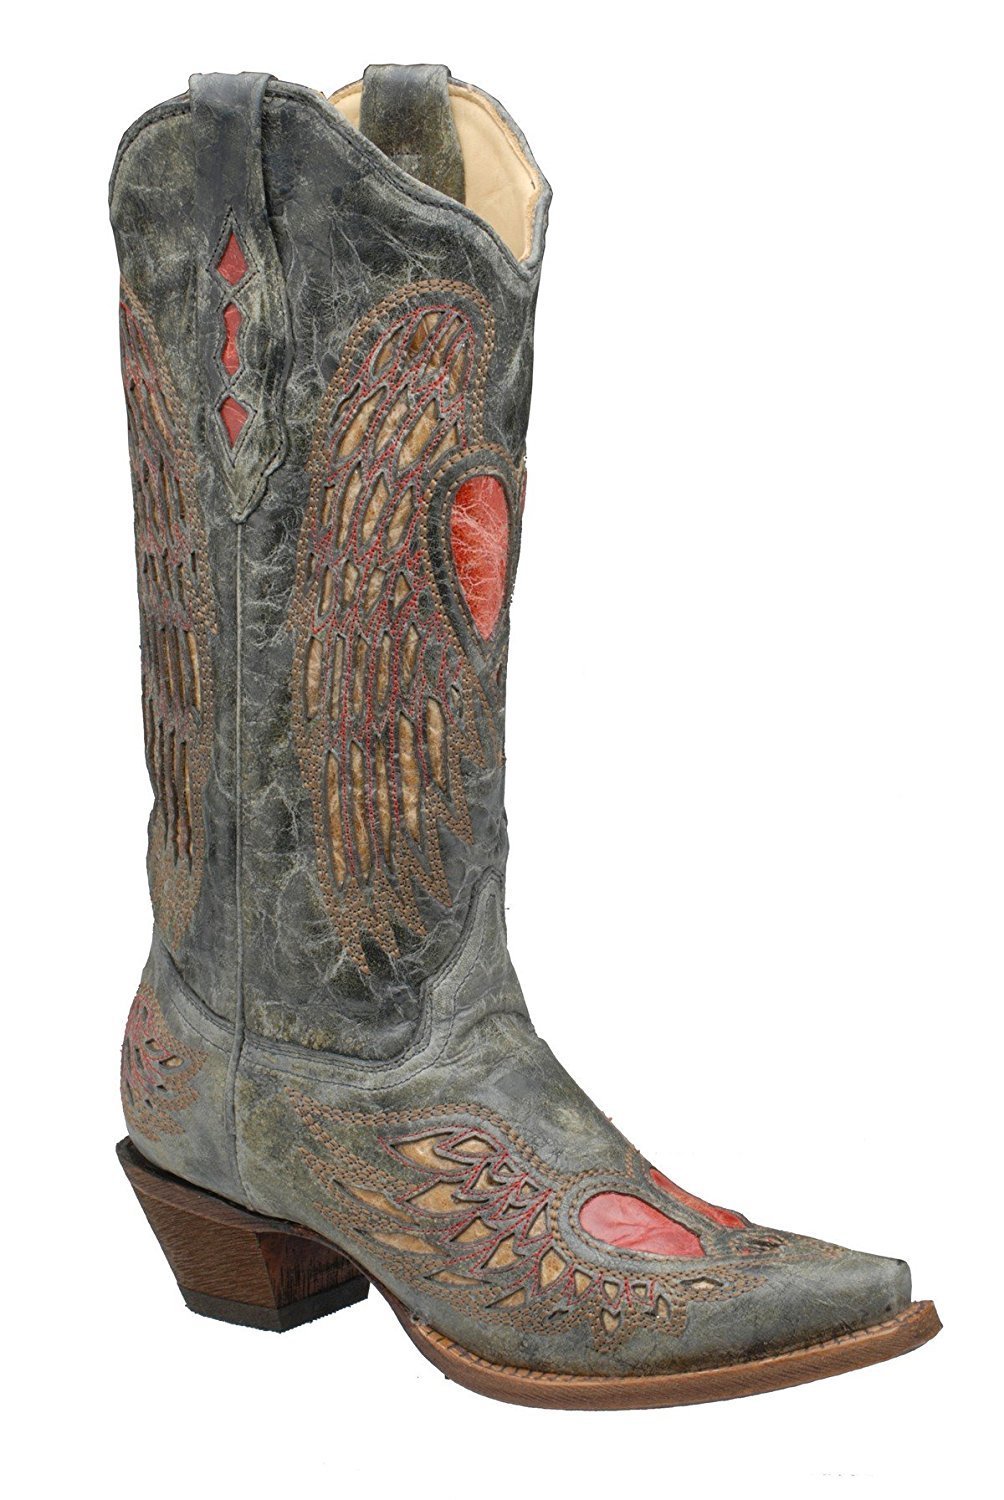 CORRAL Women's Black/Antique Saddle Wing and Heart Inlay Snip Toe Cowgirl Boots A1975 (10.5 B(M) US)